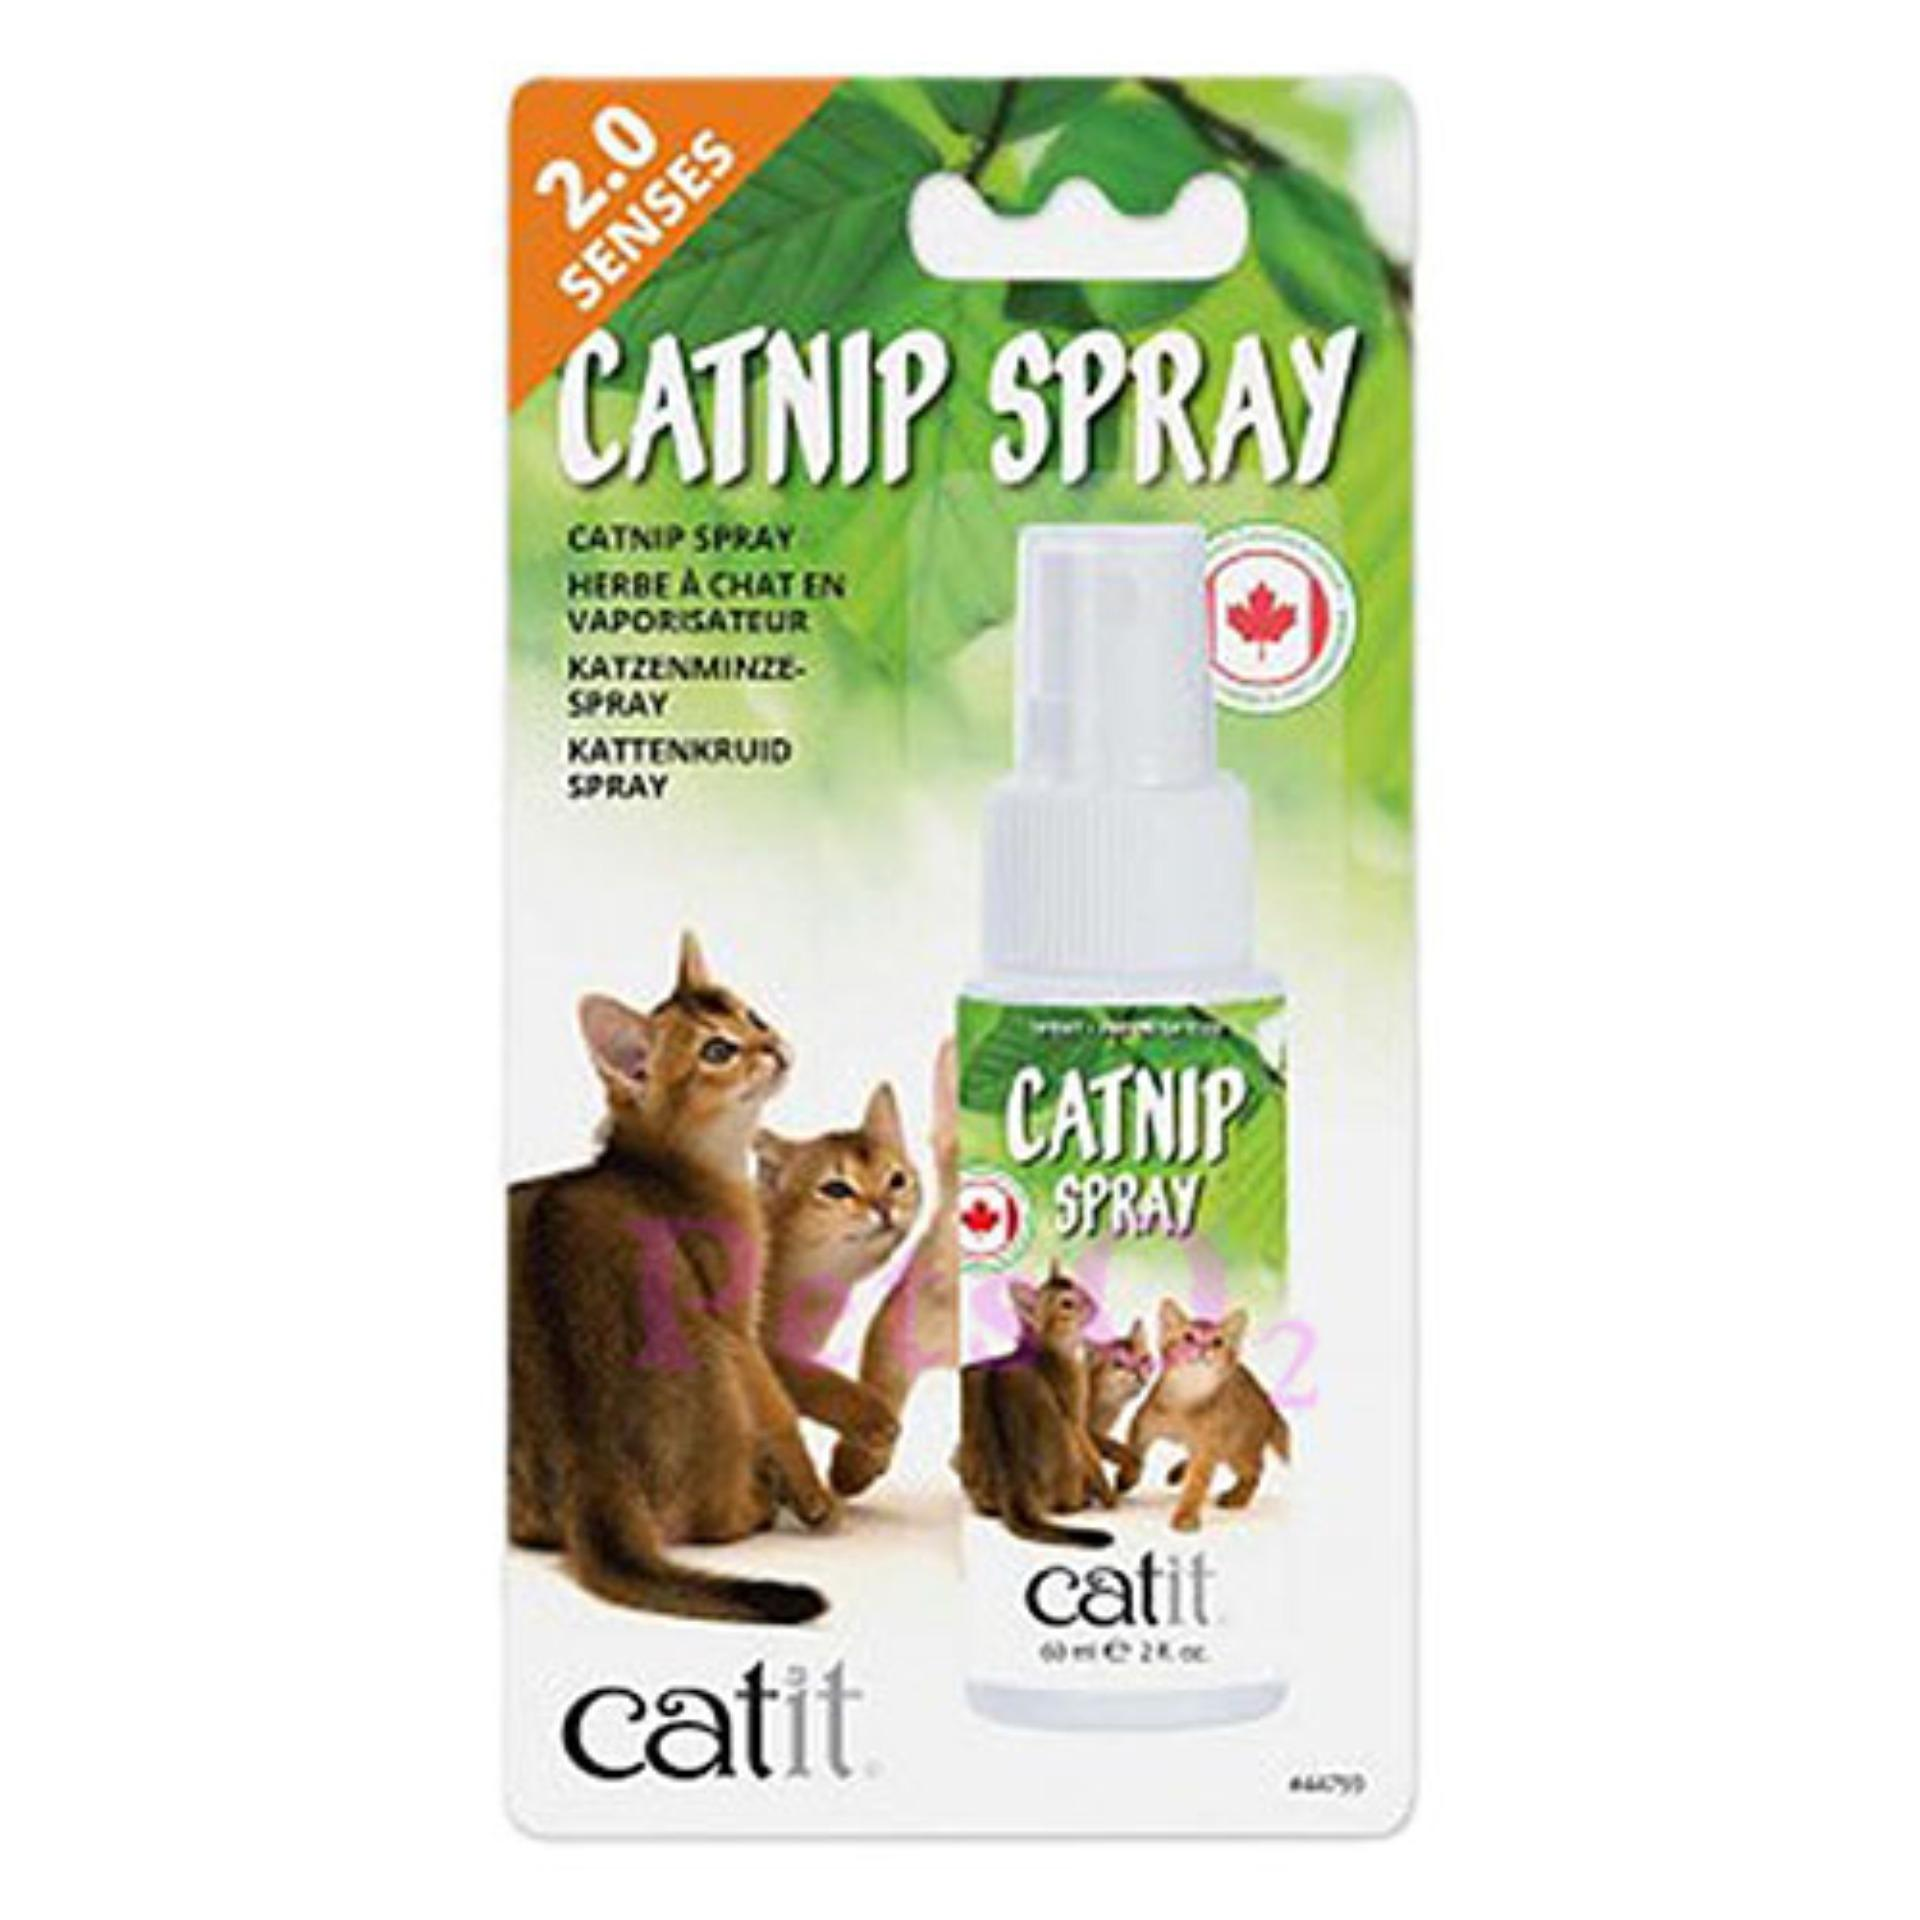 Catit Senses 2.0 Catnip Spray 60ml By Petso2.